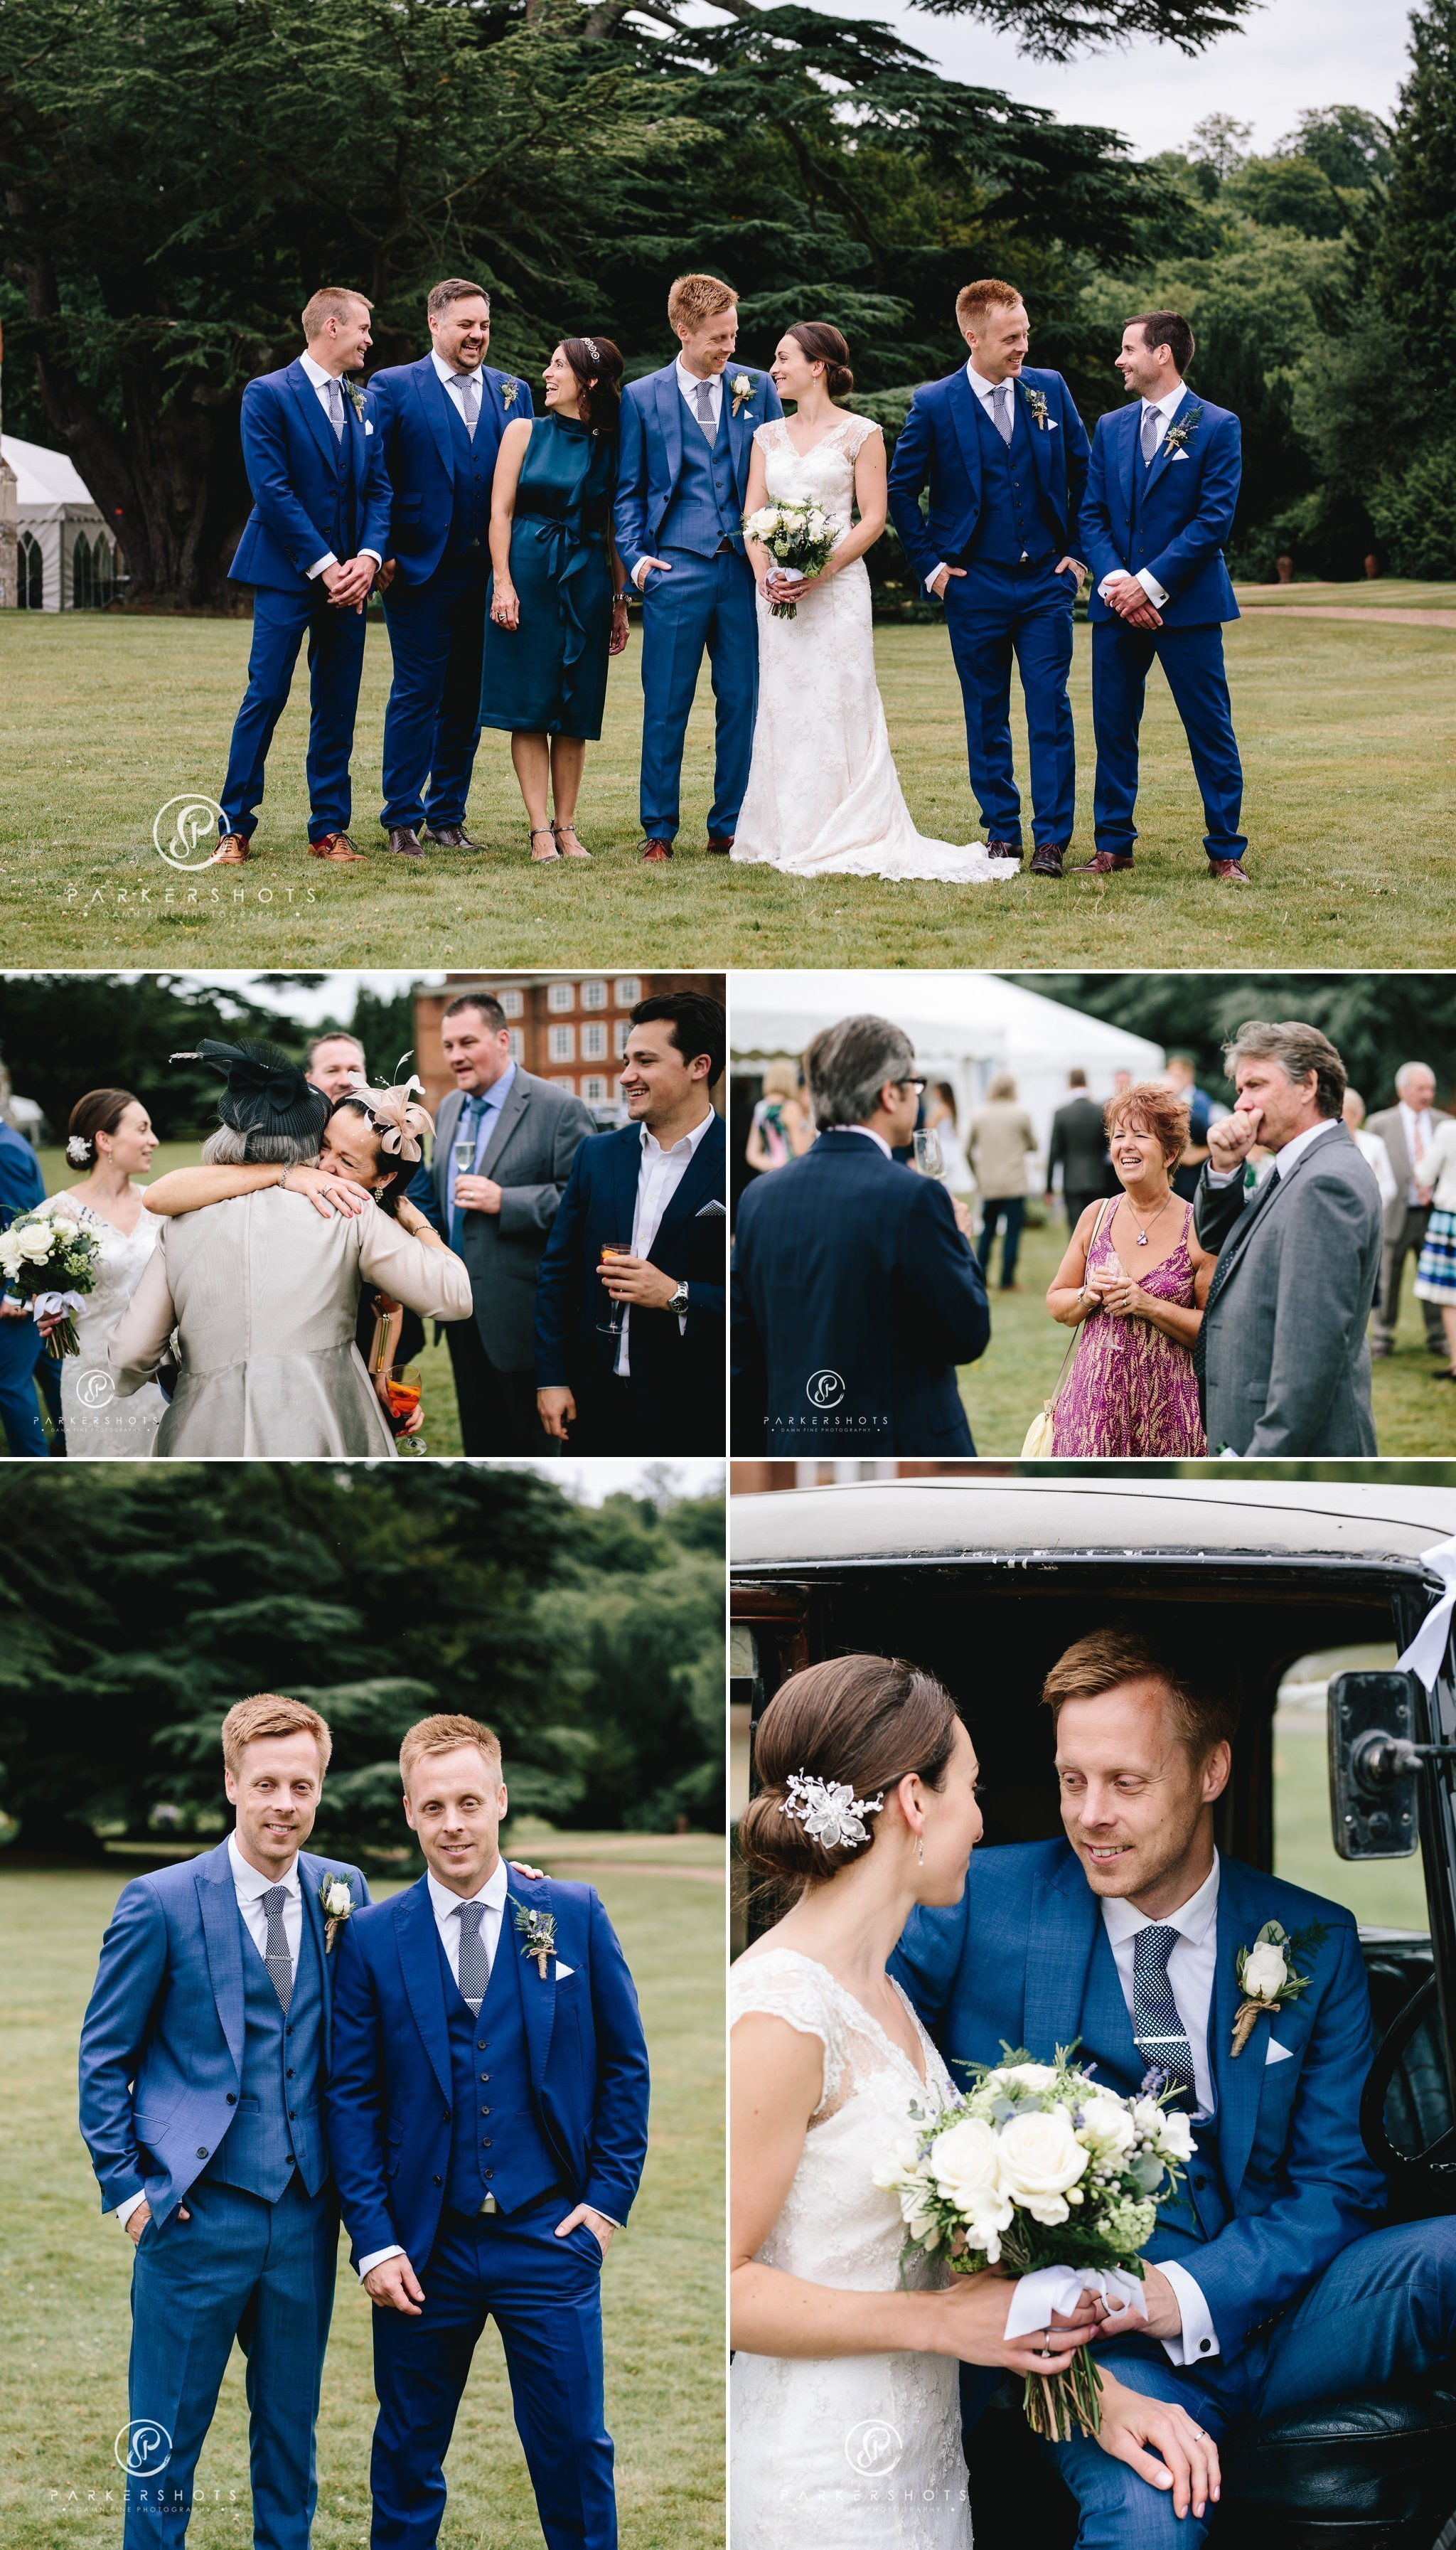 Wedding party at Lullingstone Castle